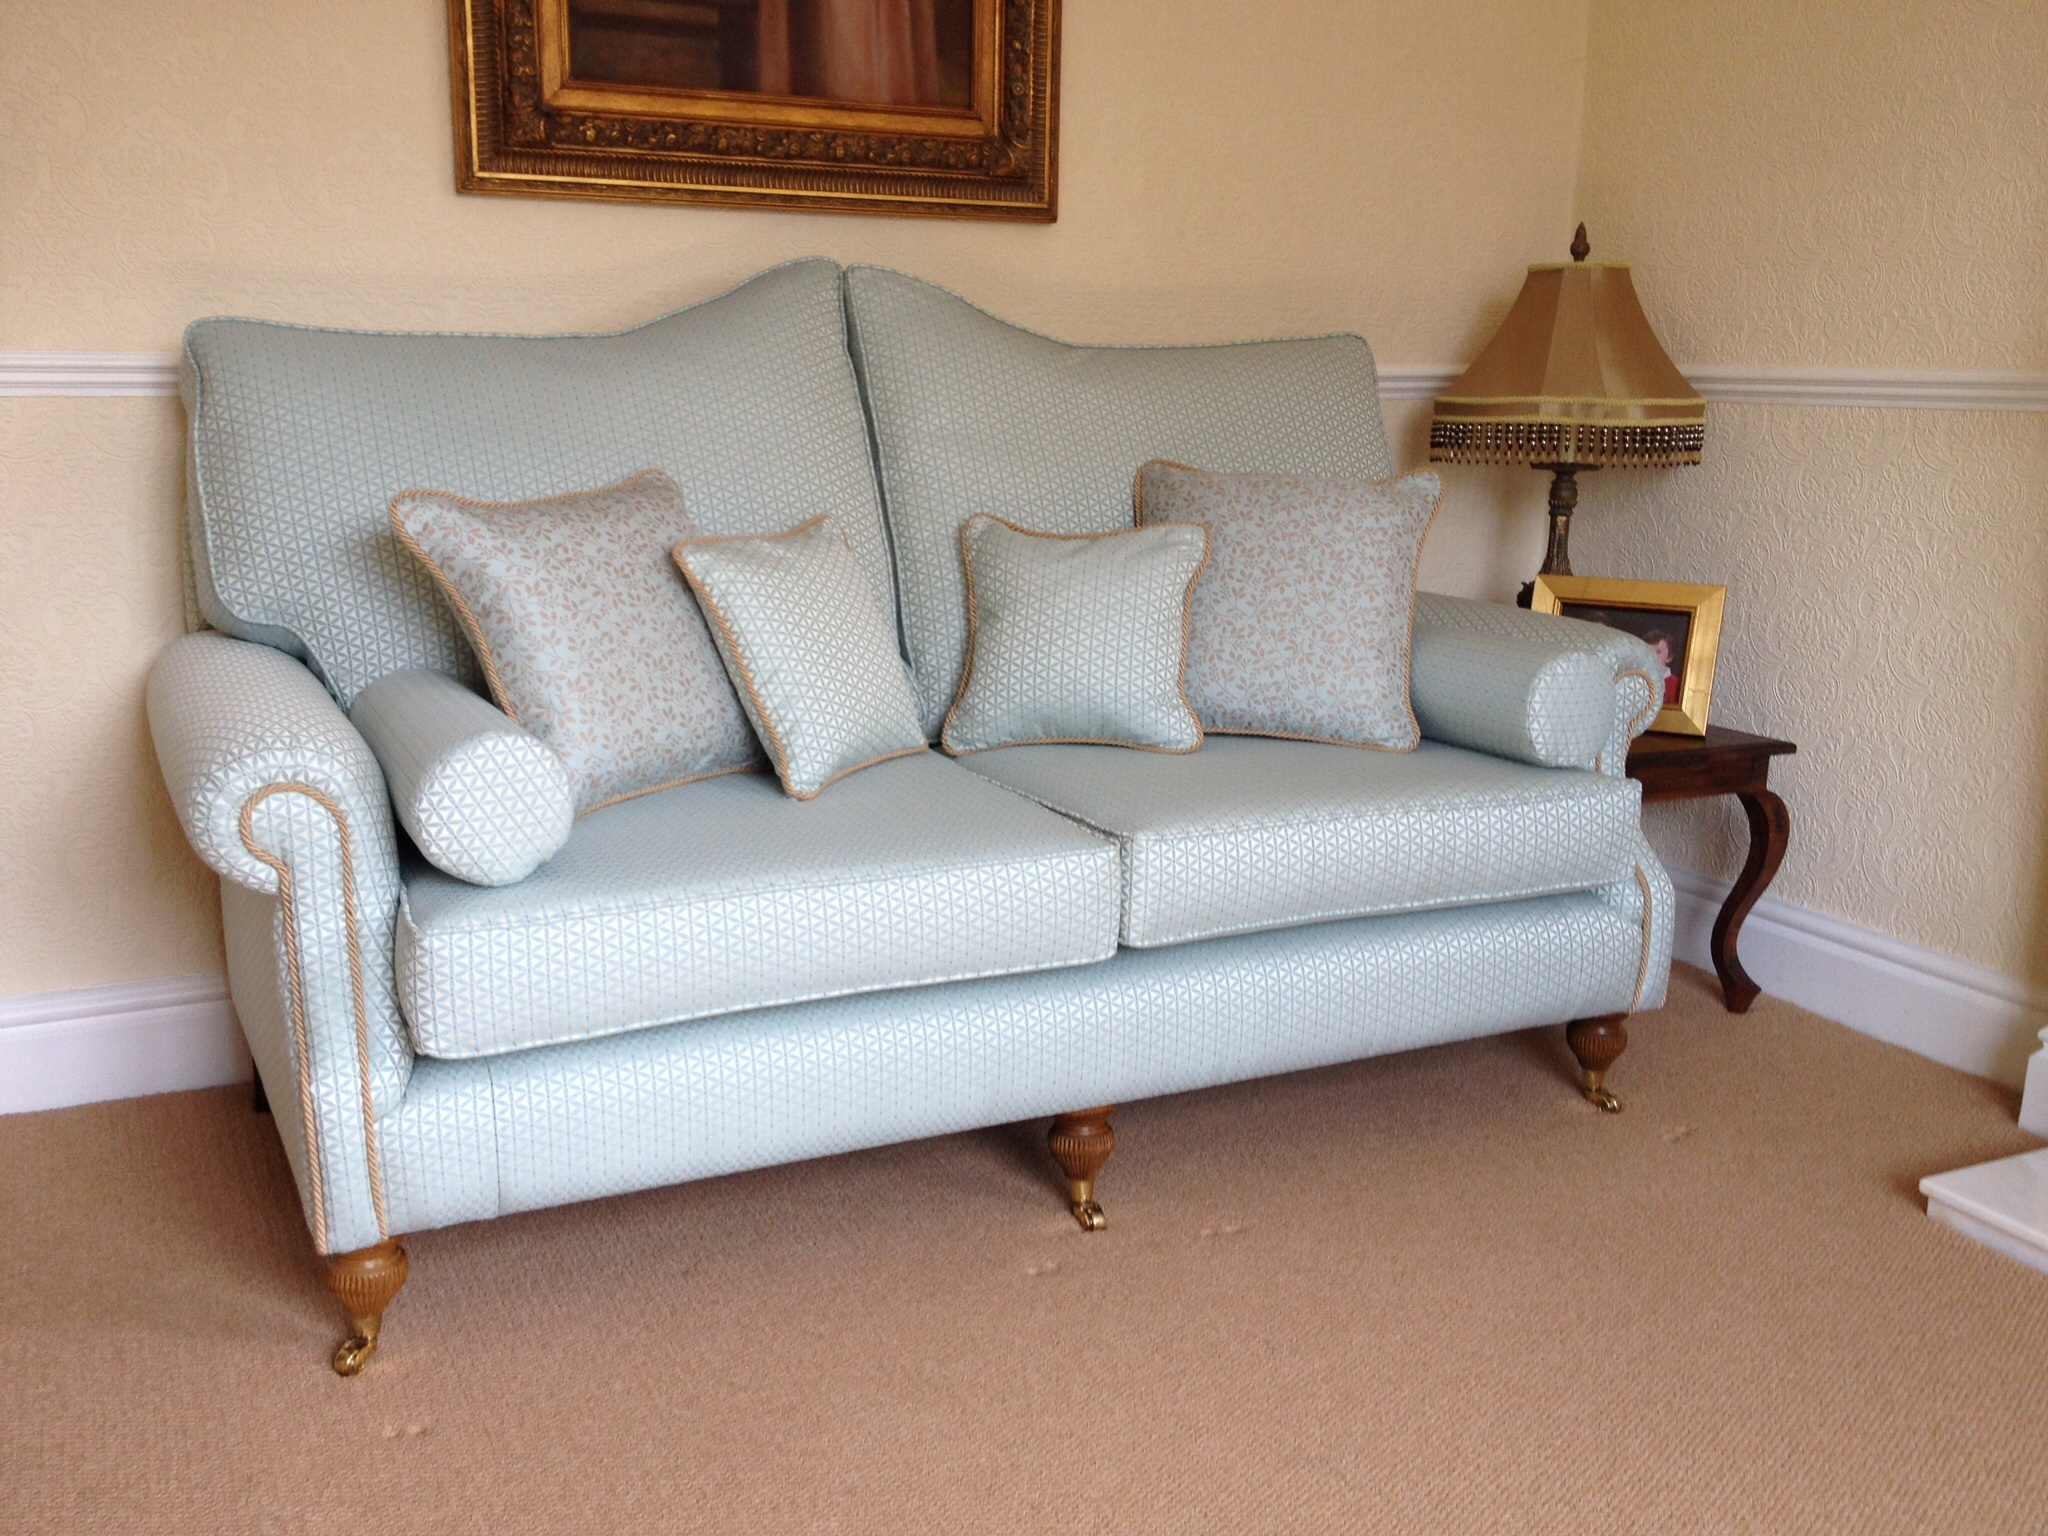 Reupholstery in  Blendworth Fabrics